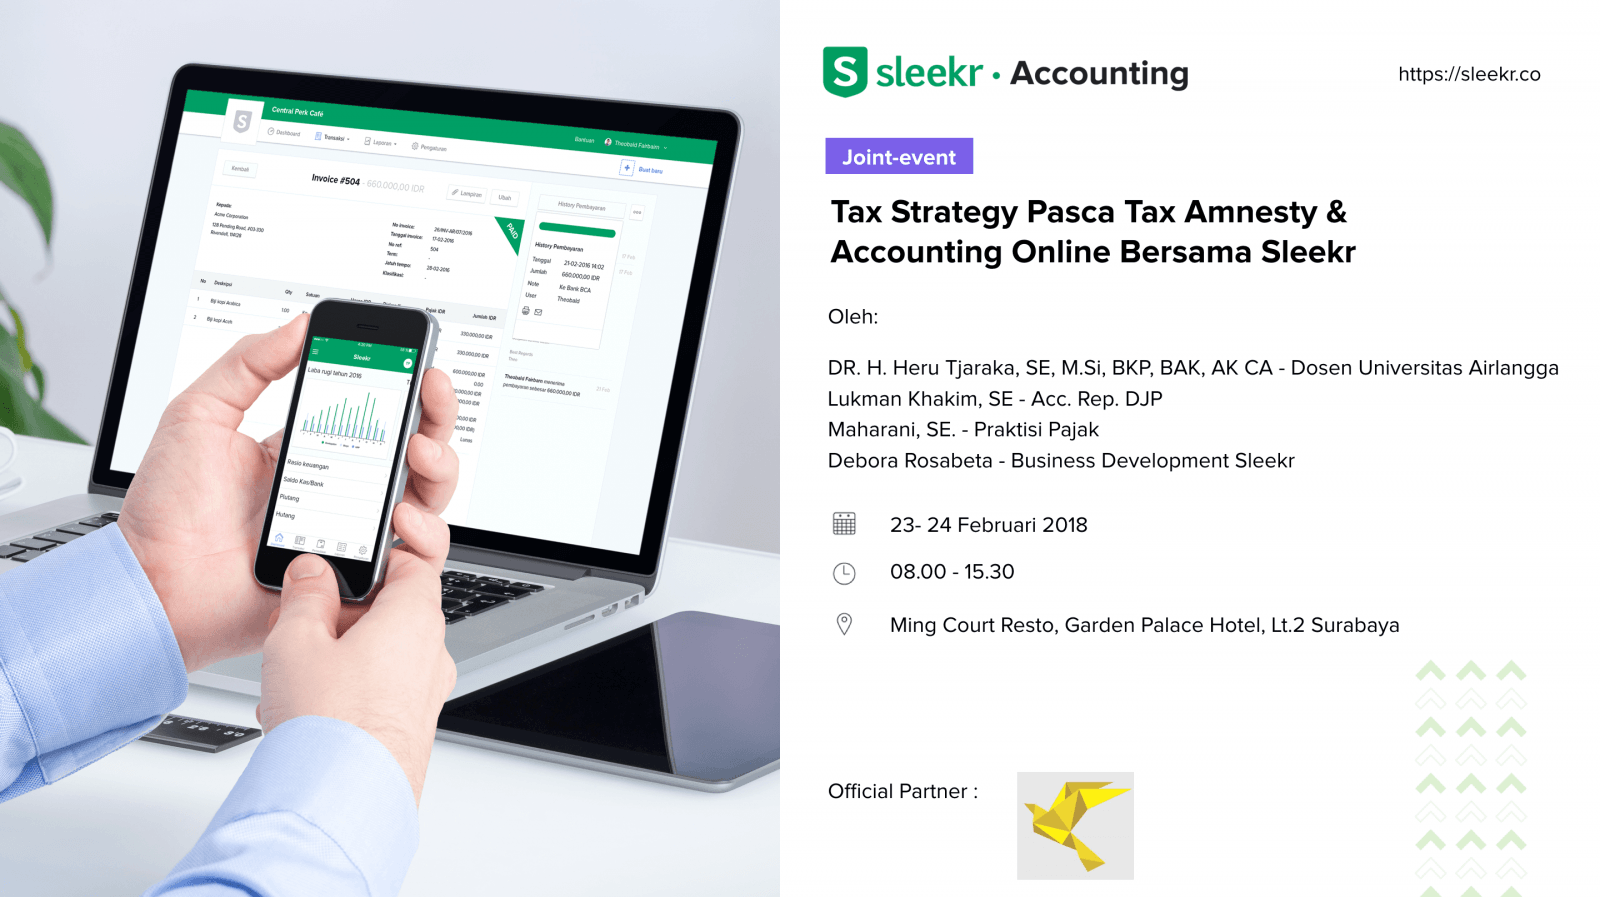 Tax Strategy Pasca Tax Amnesty & Accounting Online Bersama Sleekr